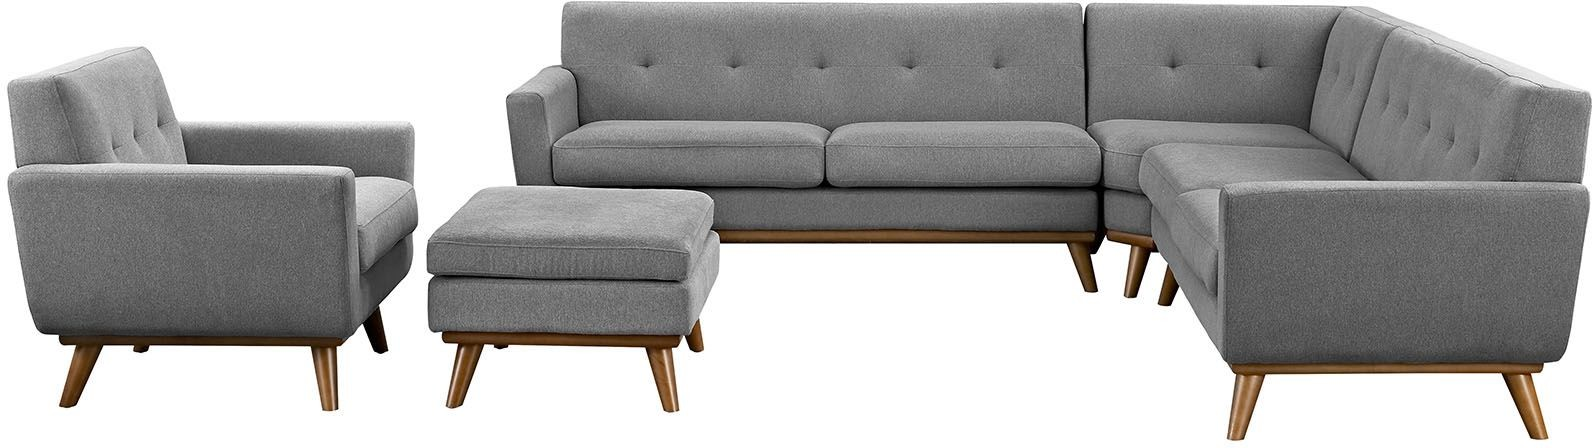 Engage gray 5 piece sectional sofa from renegade coleman for 5 piece grey sectional sofa